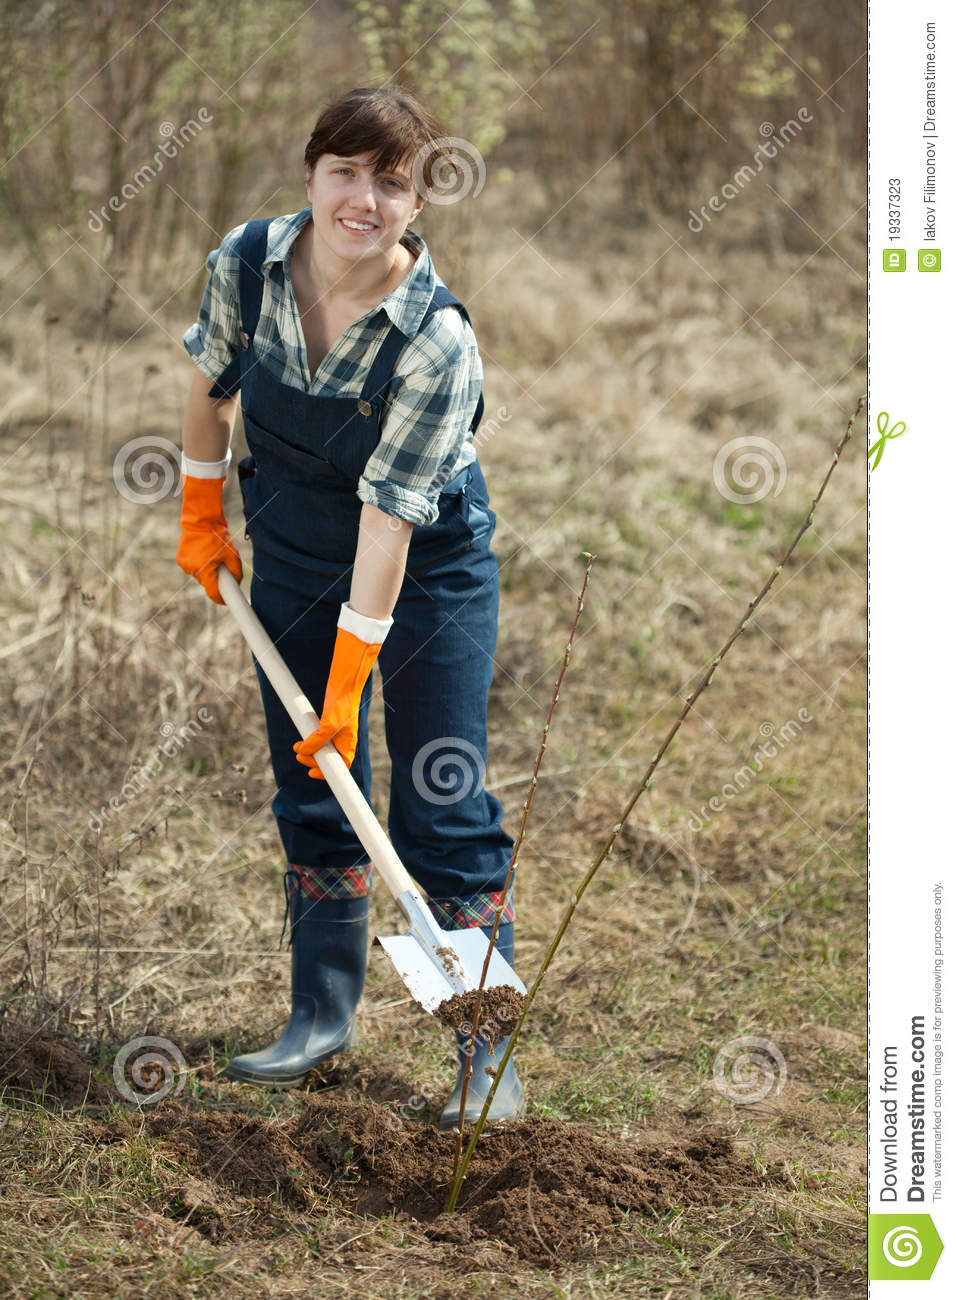 Female Farmer Planting Shrubbery Stock Photos Image